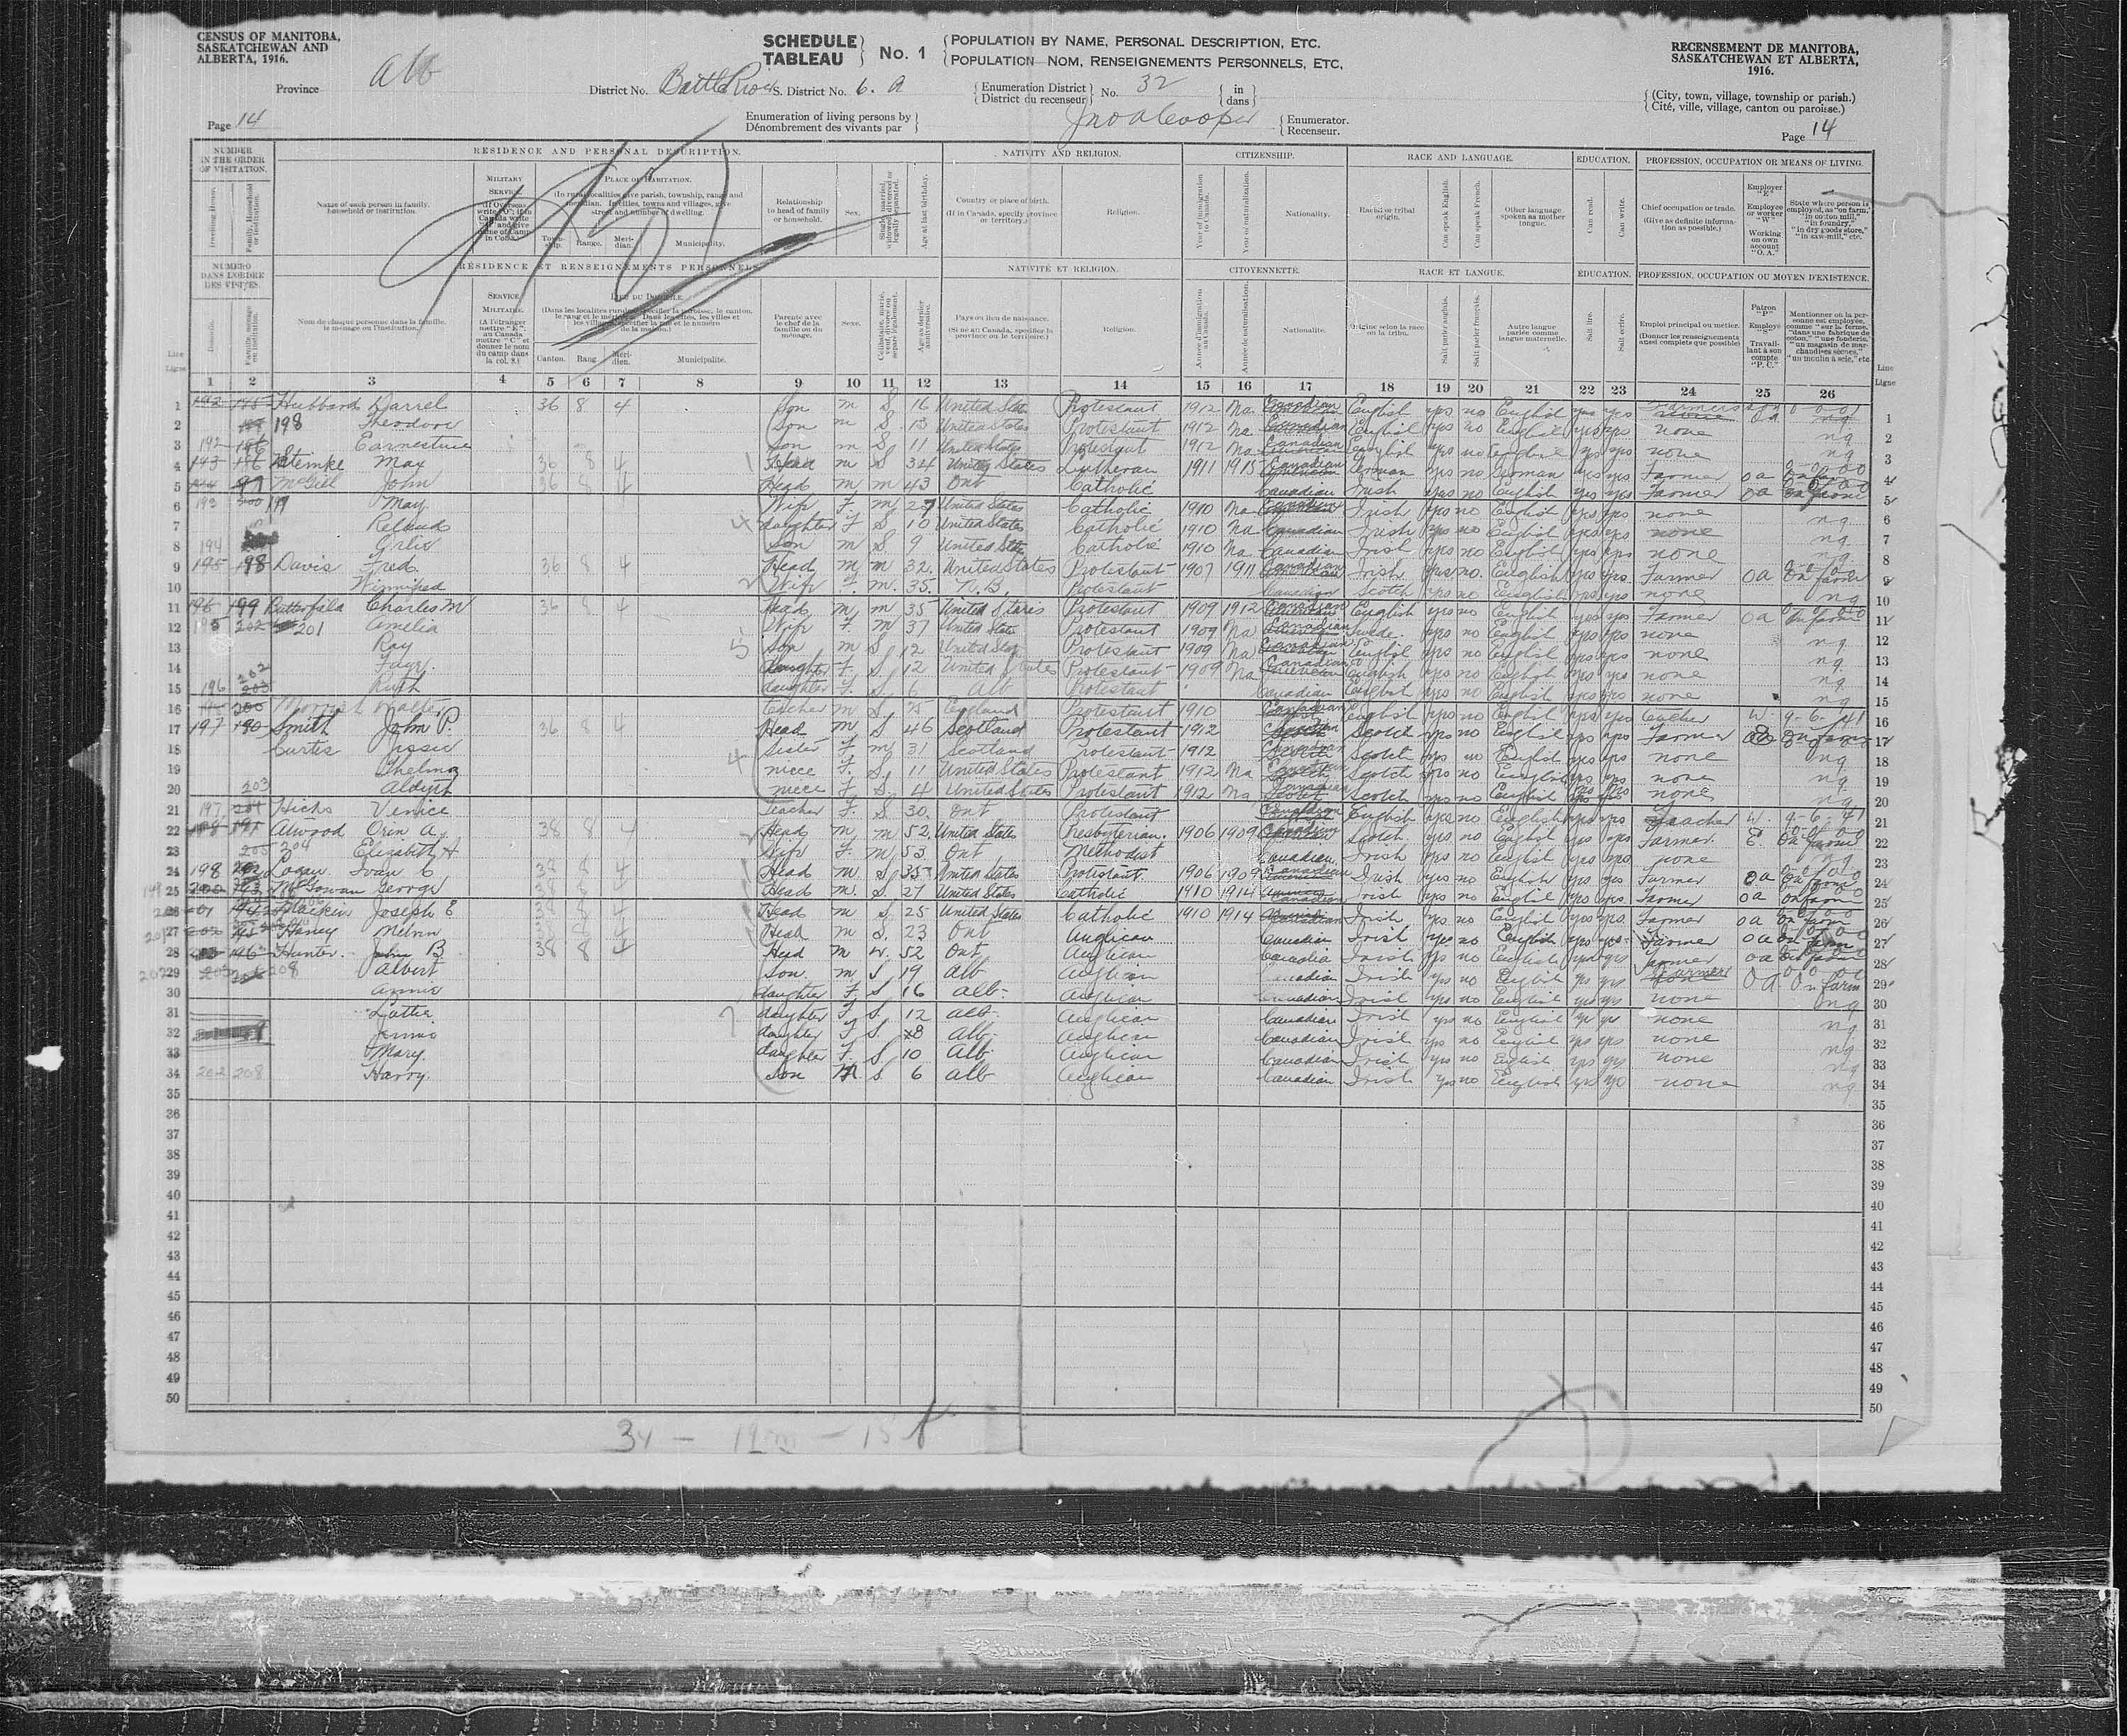 Title: Census of the Prairie Provinces, 1916 - Mikan Number: 3800575 - Microform: t-21946